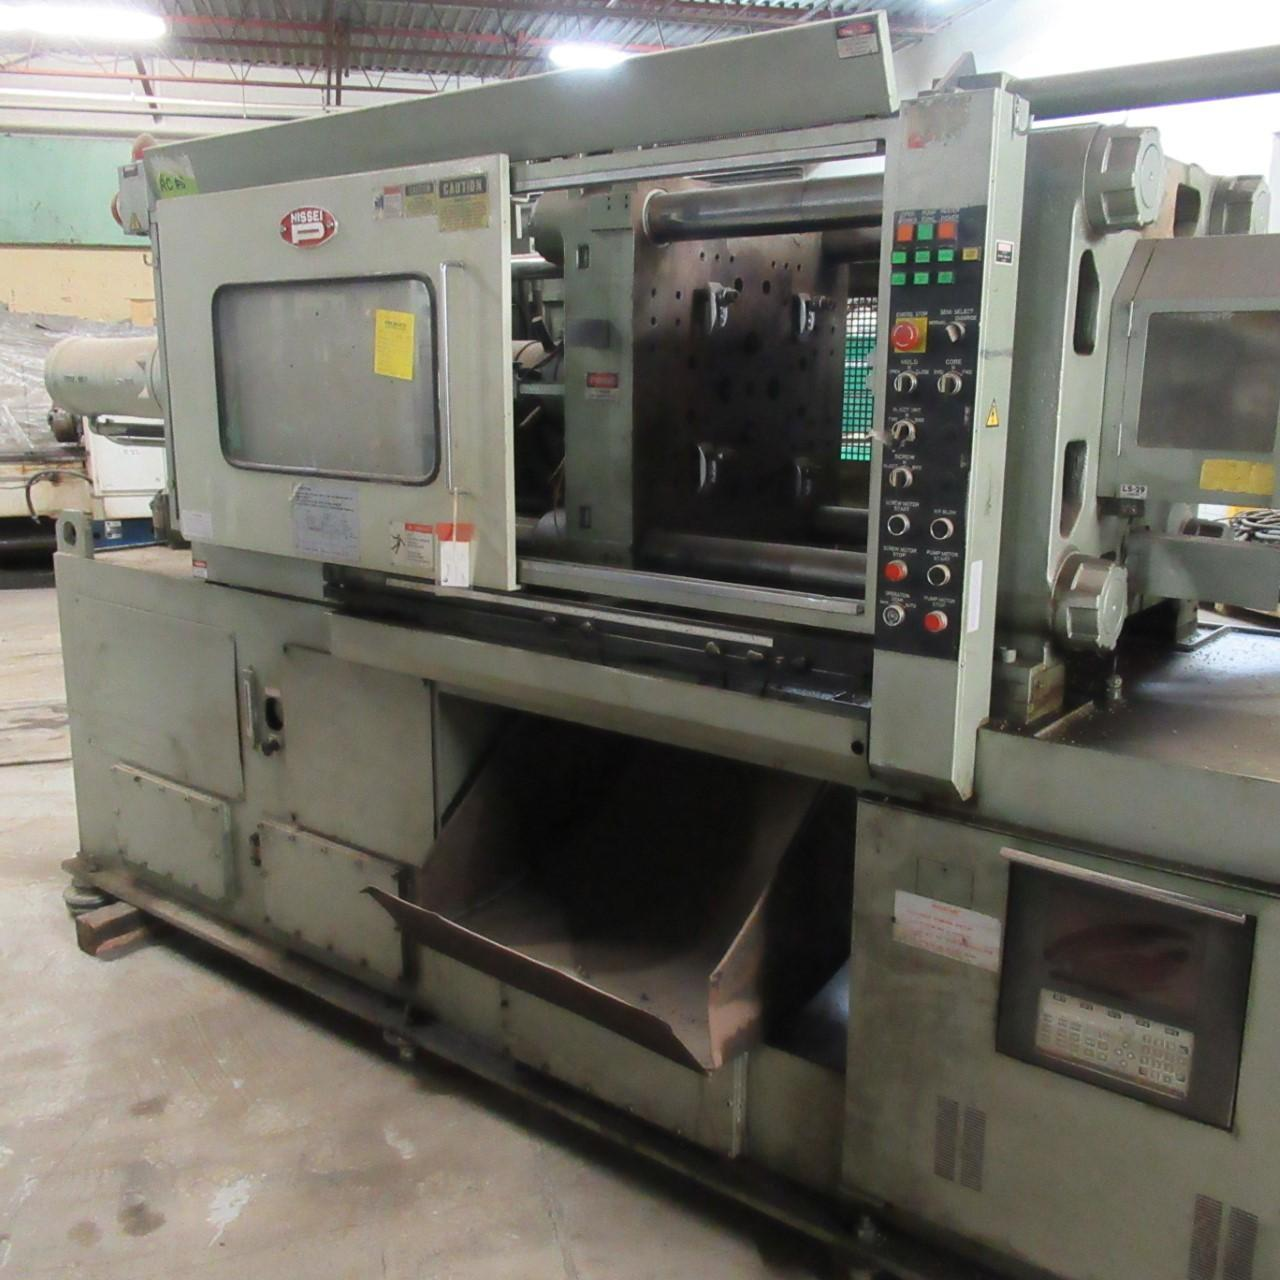 Nissei FS180S36ASE Injection Molding Machine Year: 1996